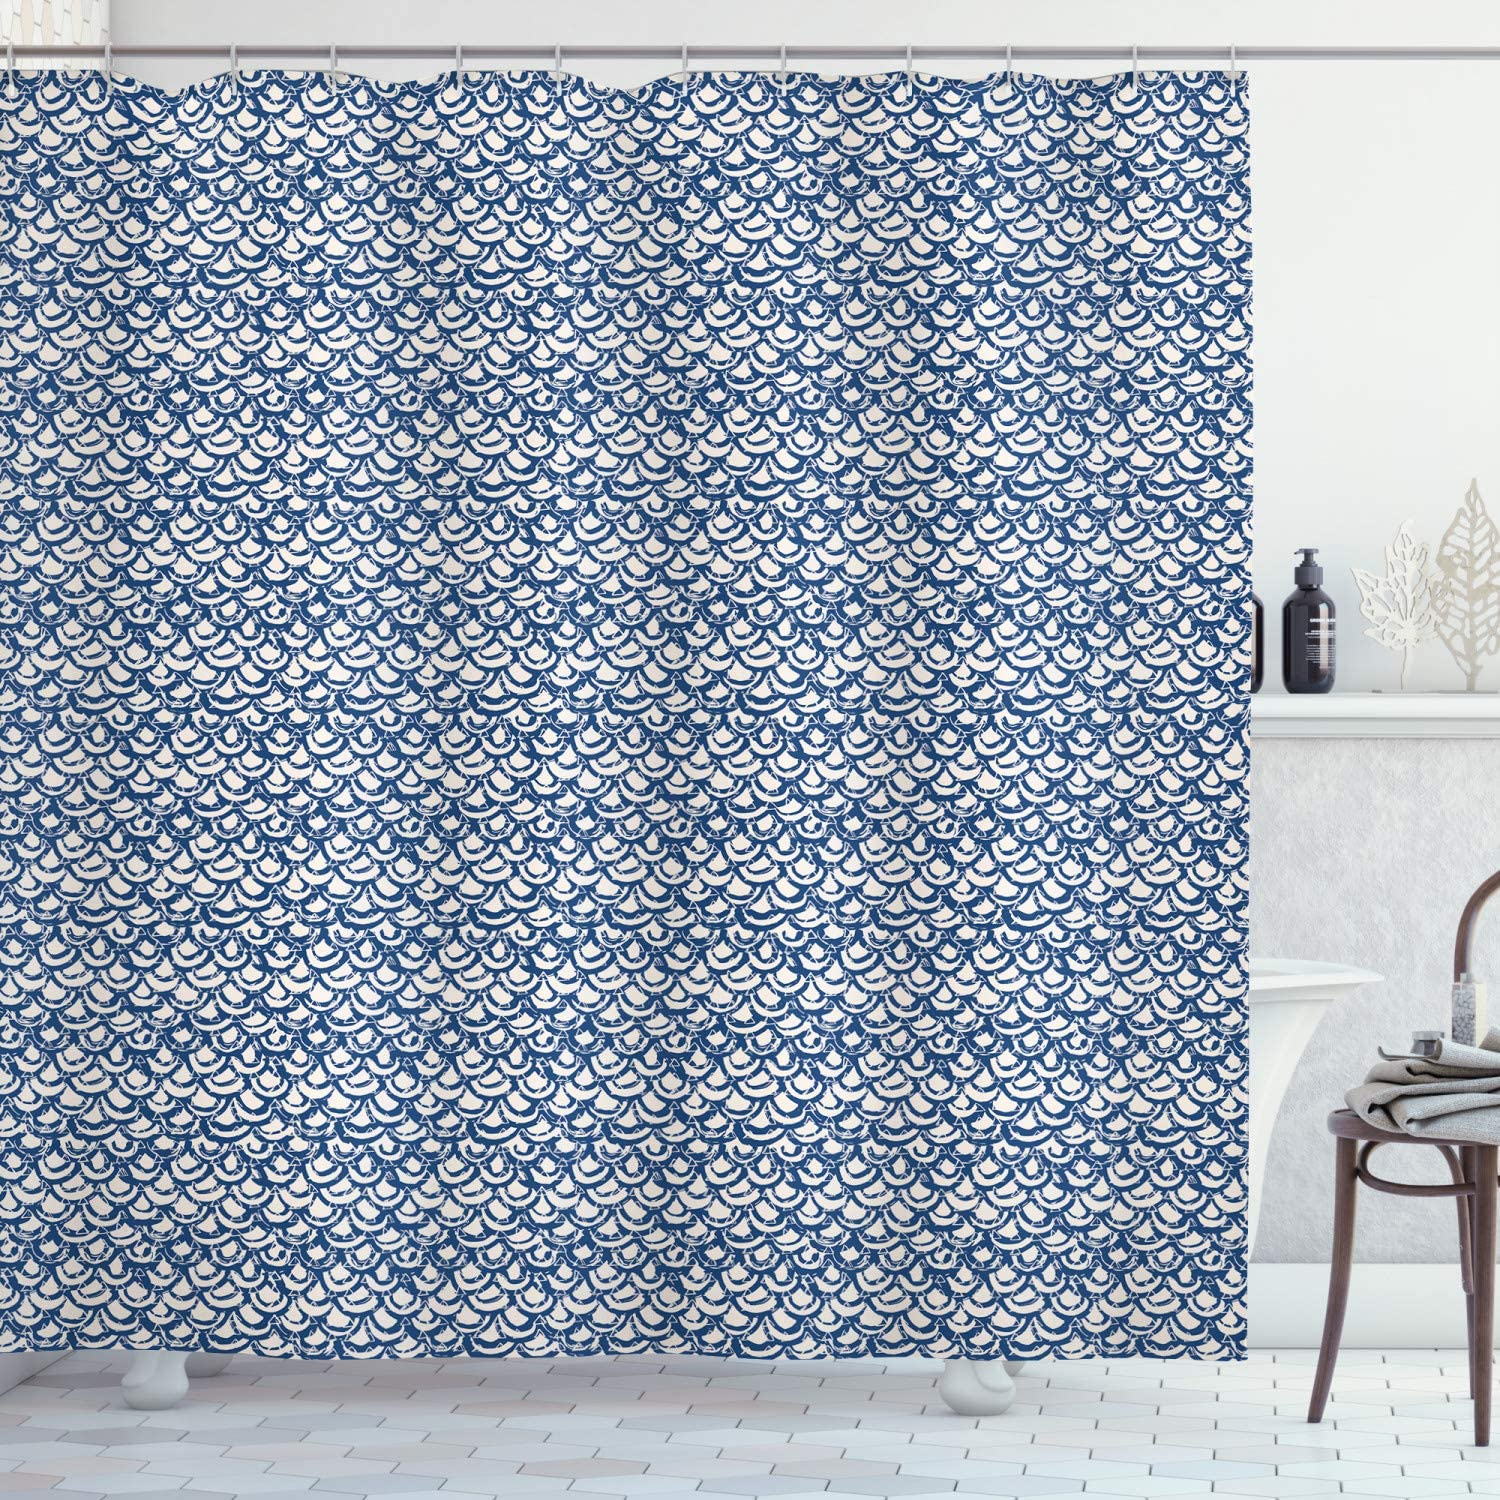 """Ambesonne Ethnic Shower Curtain, Hand Drawn Style Indonesian Batik Pattern with Curves and Small Triangles, Cloth Fabric Bathroom Decor Set with Hooks, 70"""" Long, Navy Blue"""